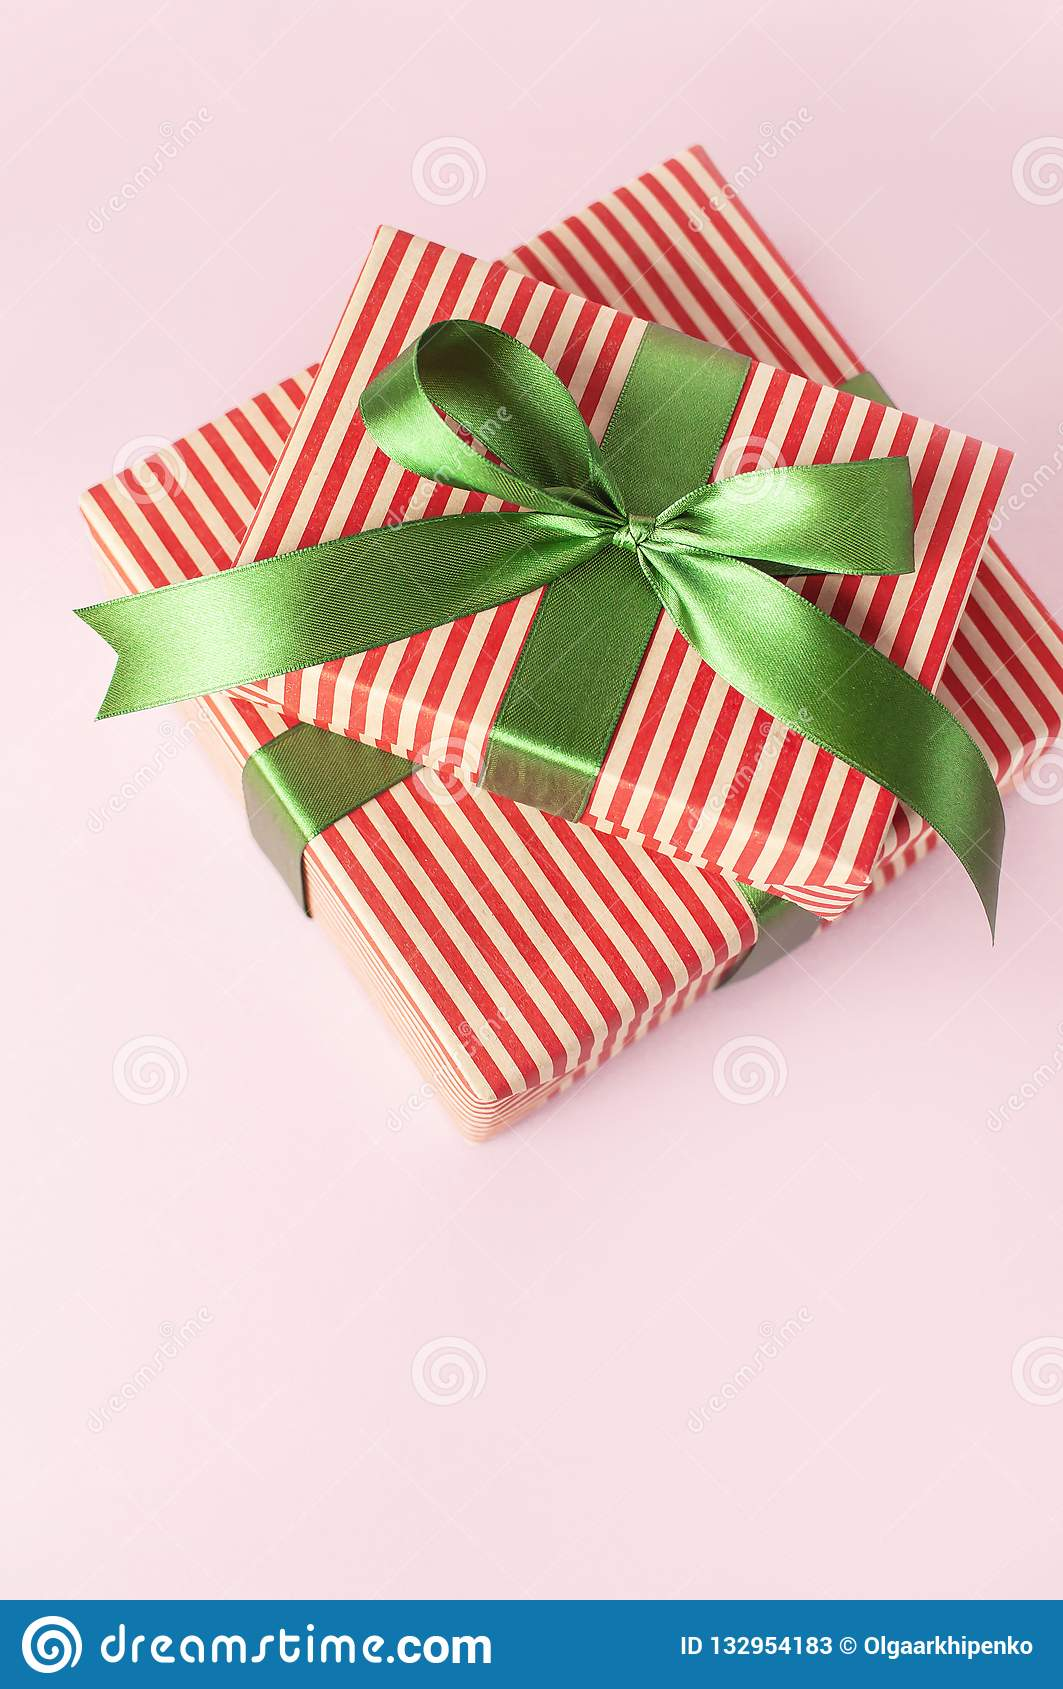 Gift boxes with green ribbon on pink background top view flat lay. Holiday concept, new year or Christmas gift box, presents Xmas